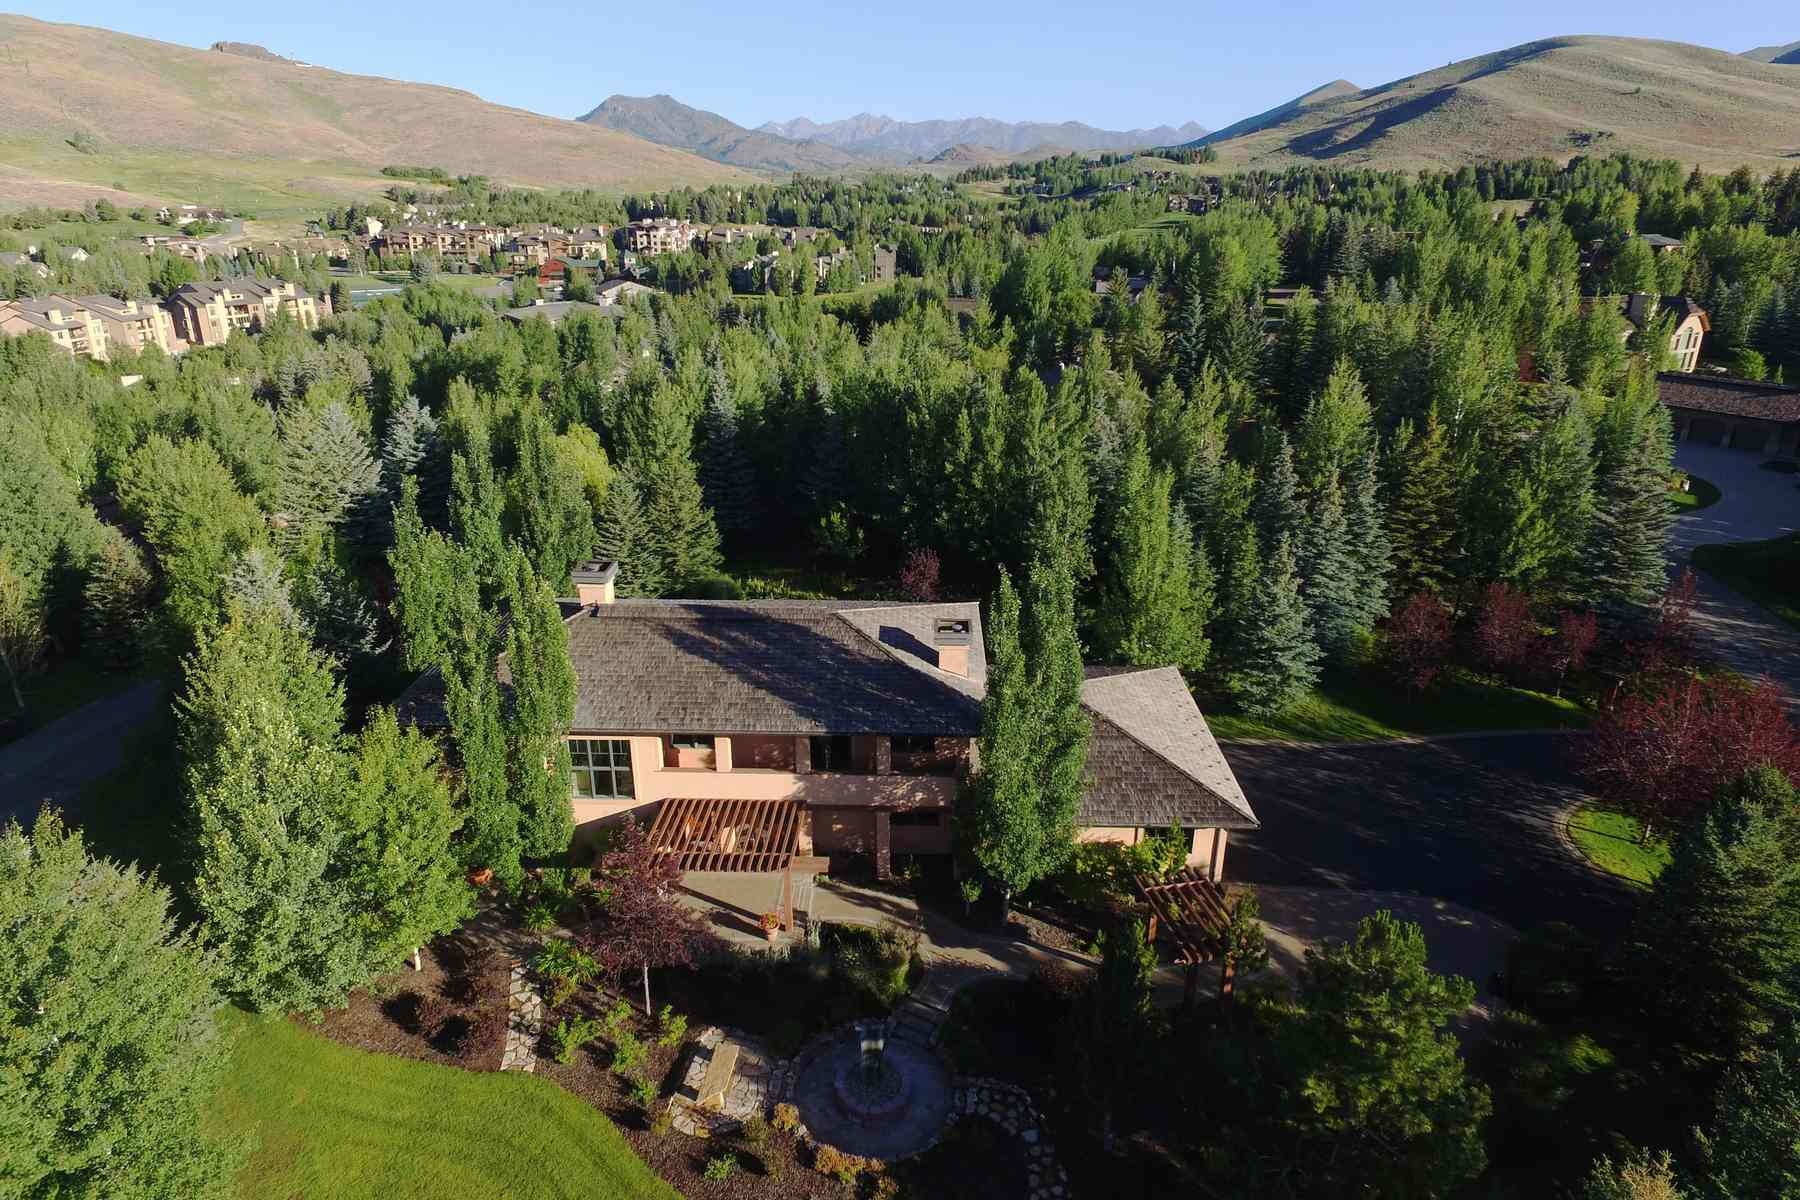 Single Family Home for Sale at Tuscany in Sun Valley 115 Highlands Dr Sun Valley, Idaho 83353 United States